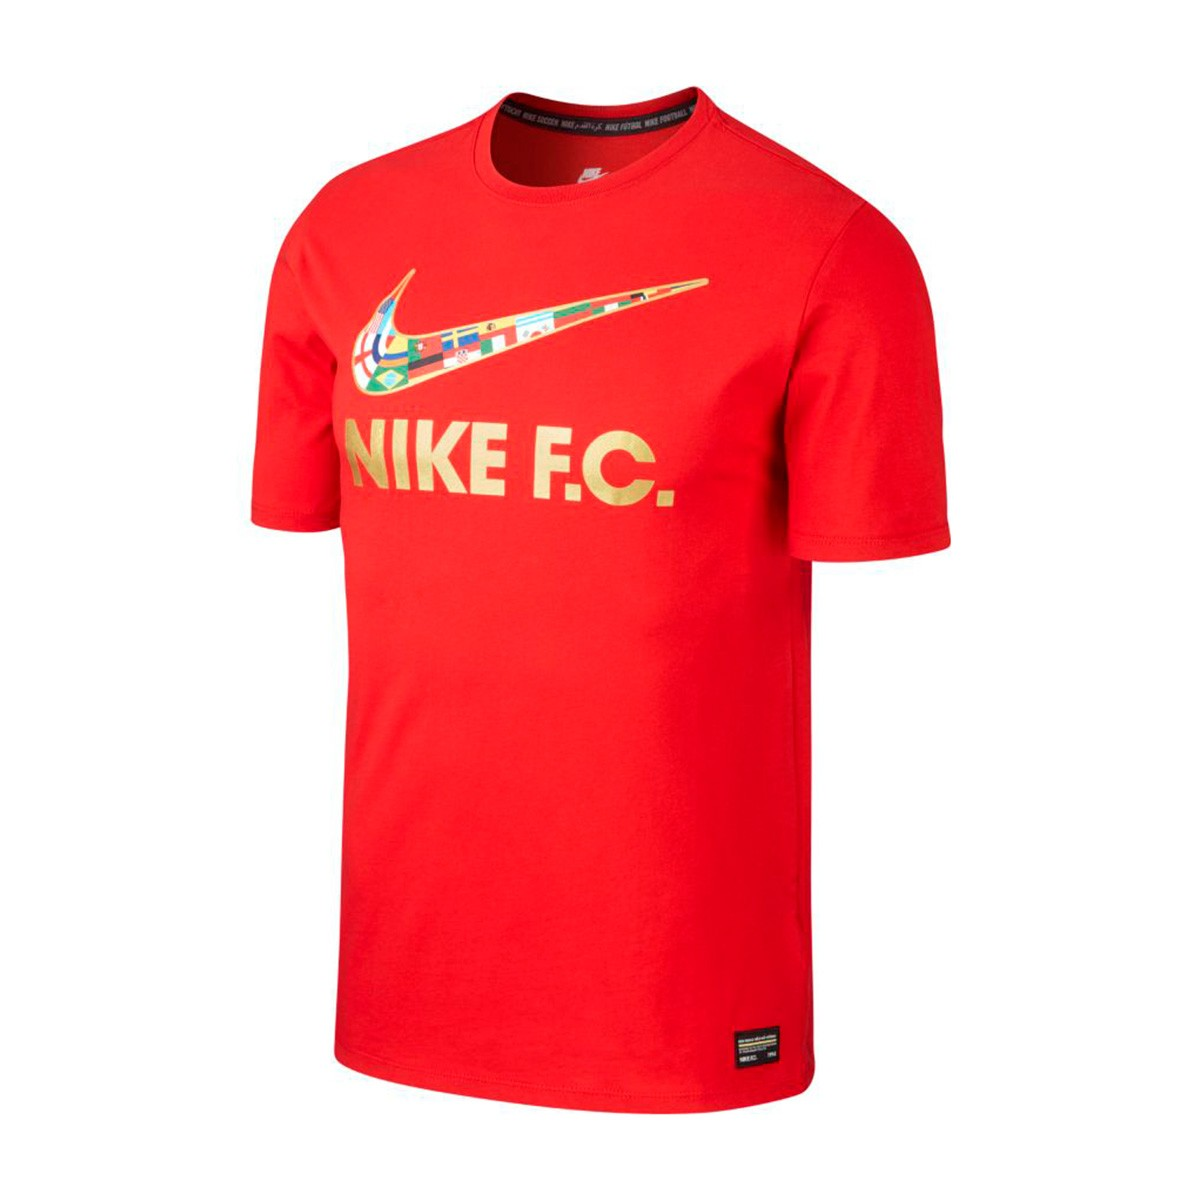 most popular classic fit the sale of shoes Camiseta Nike F.C. Swoosh Flag University red-Metallic gold